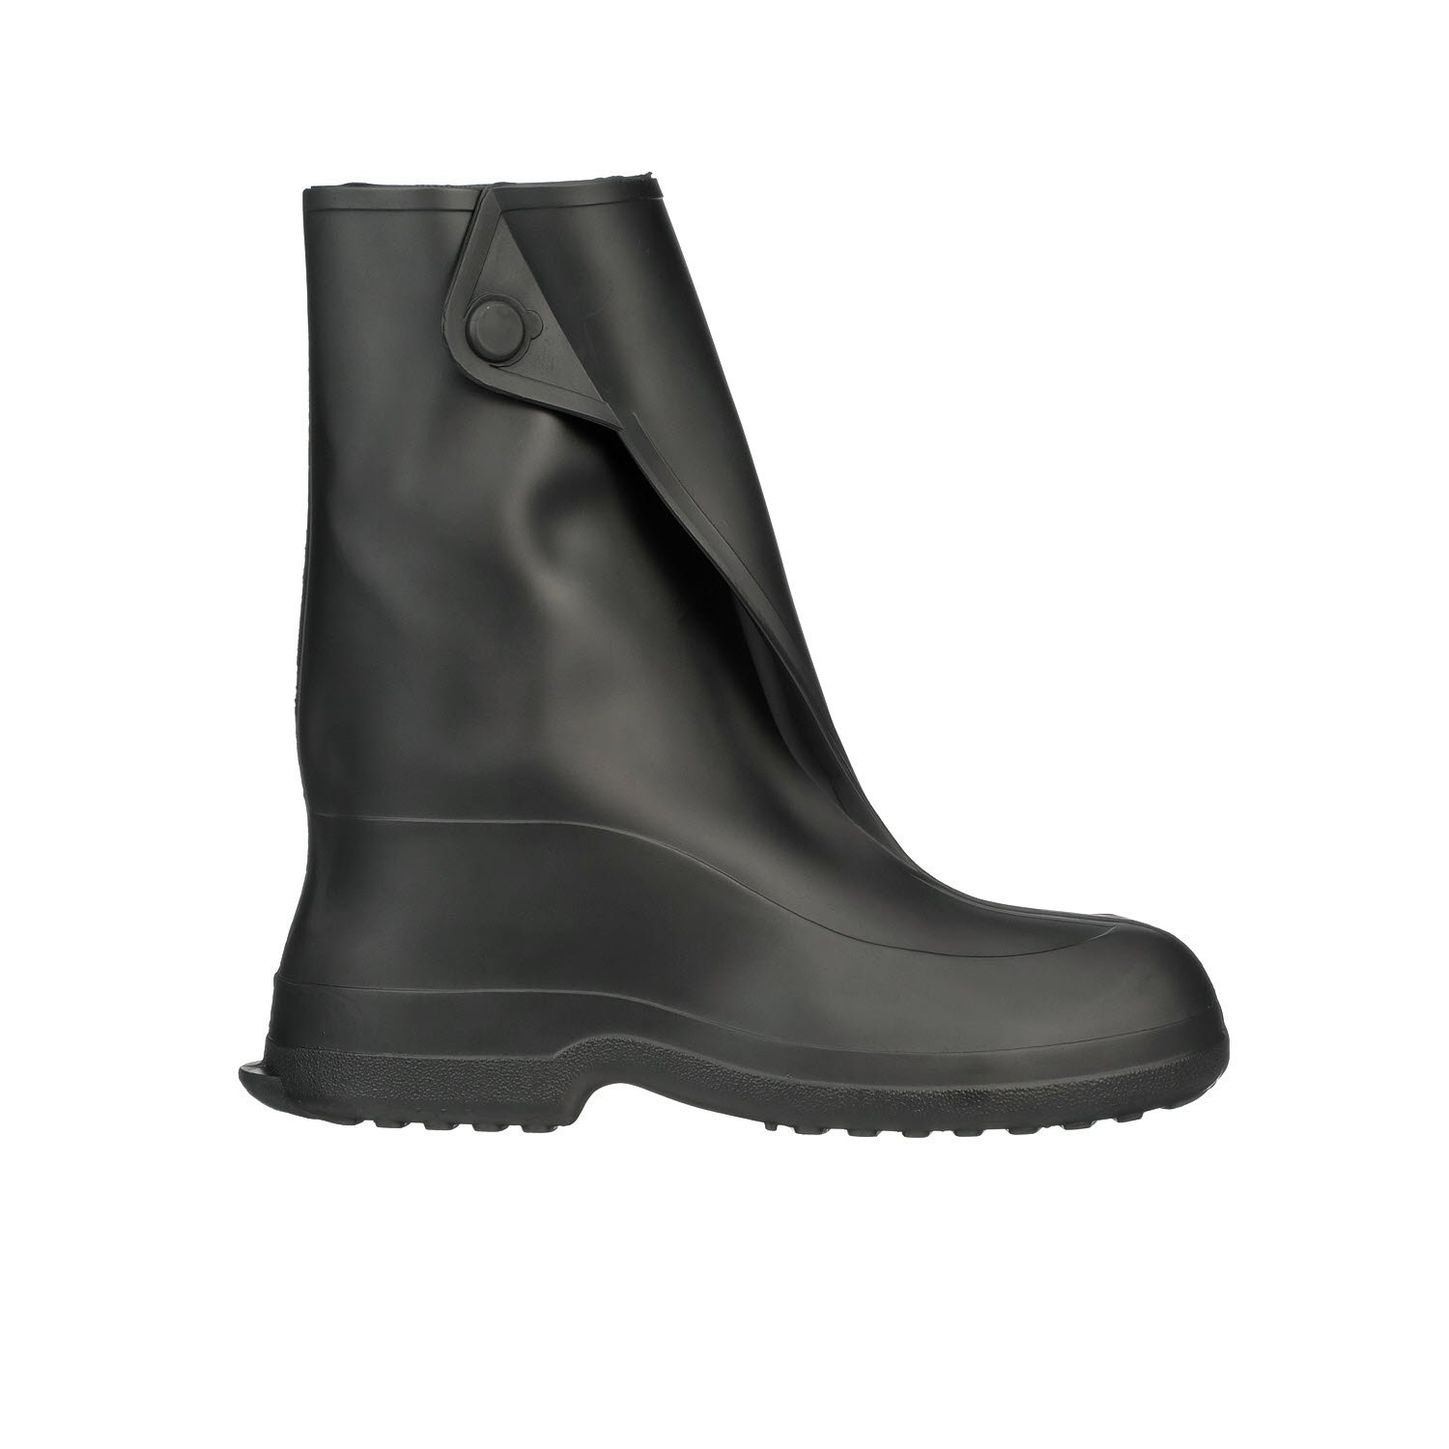 tingley-natural-rubber-overboots-1400 -10-tall-waterproof-side.jpg